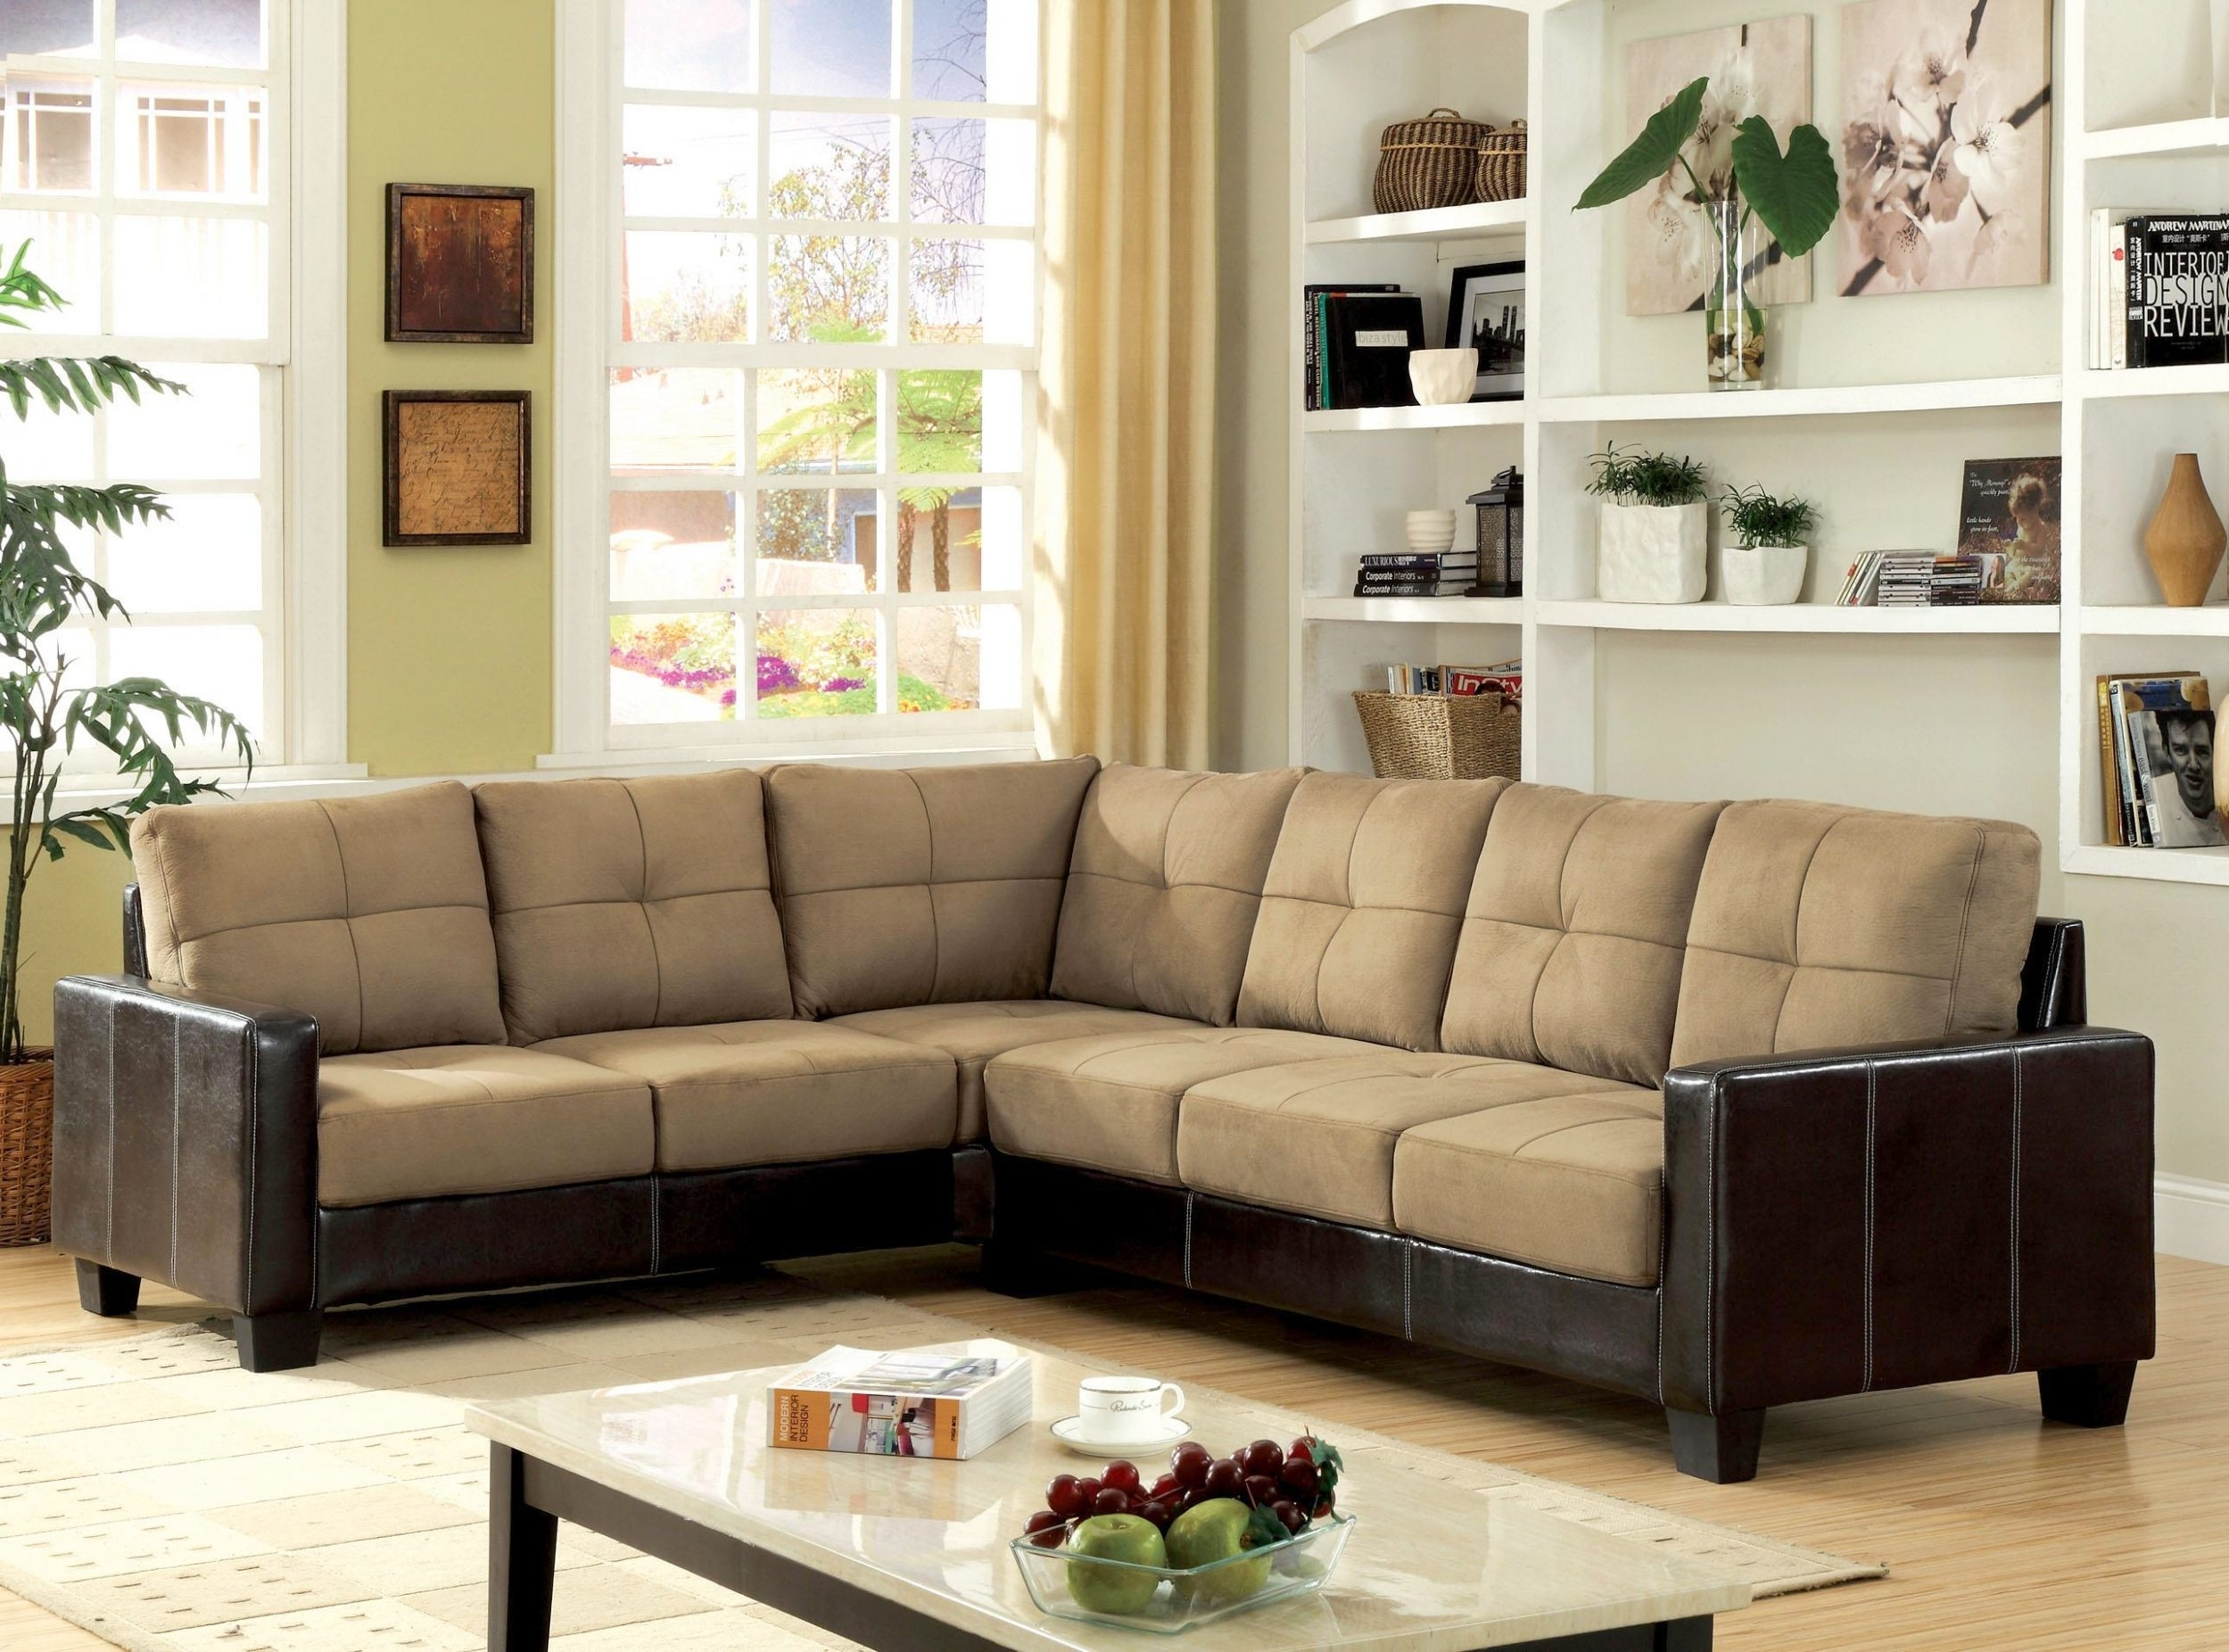 Inspiring Sectional Sofas Amazon 47 For Semi Circular Sectional Sofa In Sectional Sofas At Amazon (View 12 of 15)